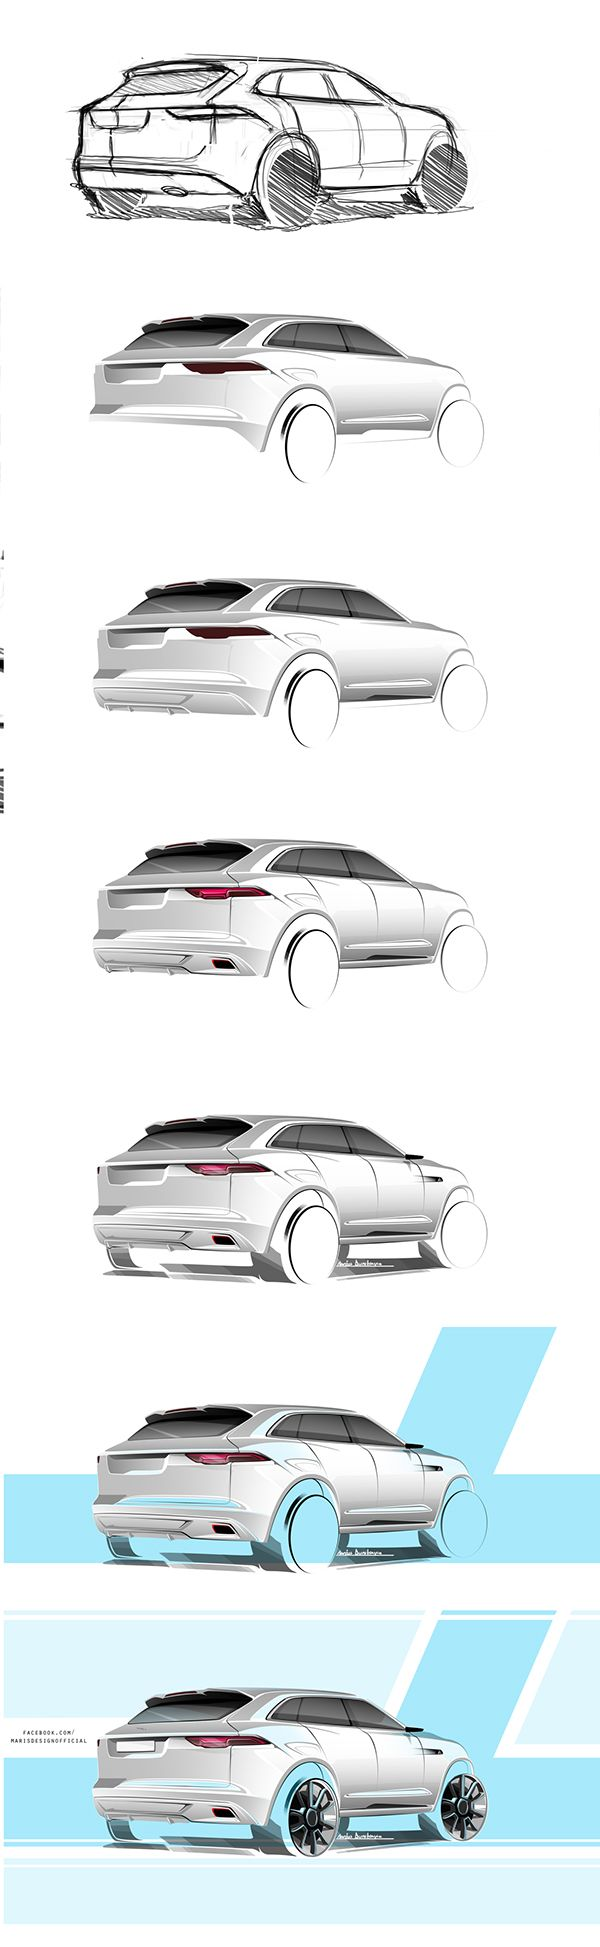 Jaguar SUV sketch on Behance